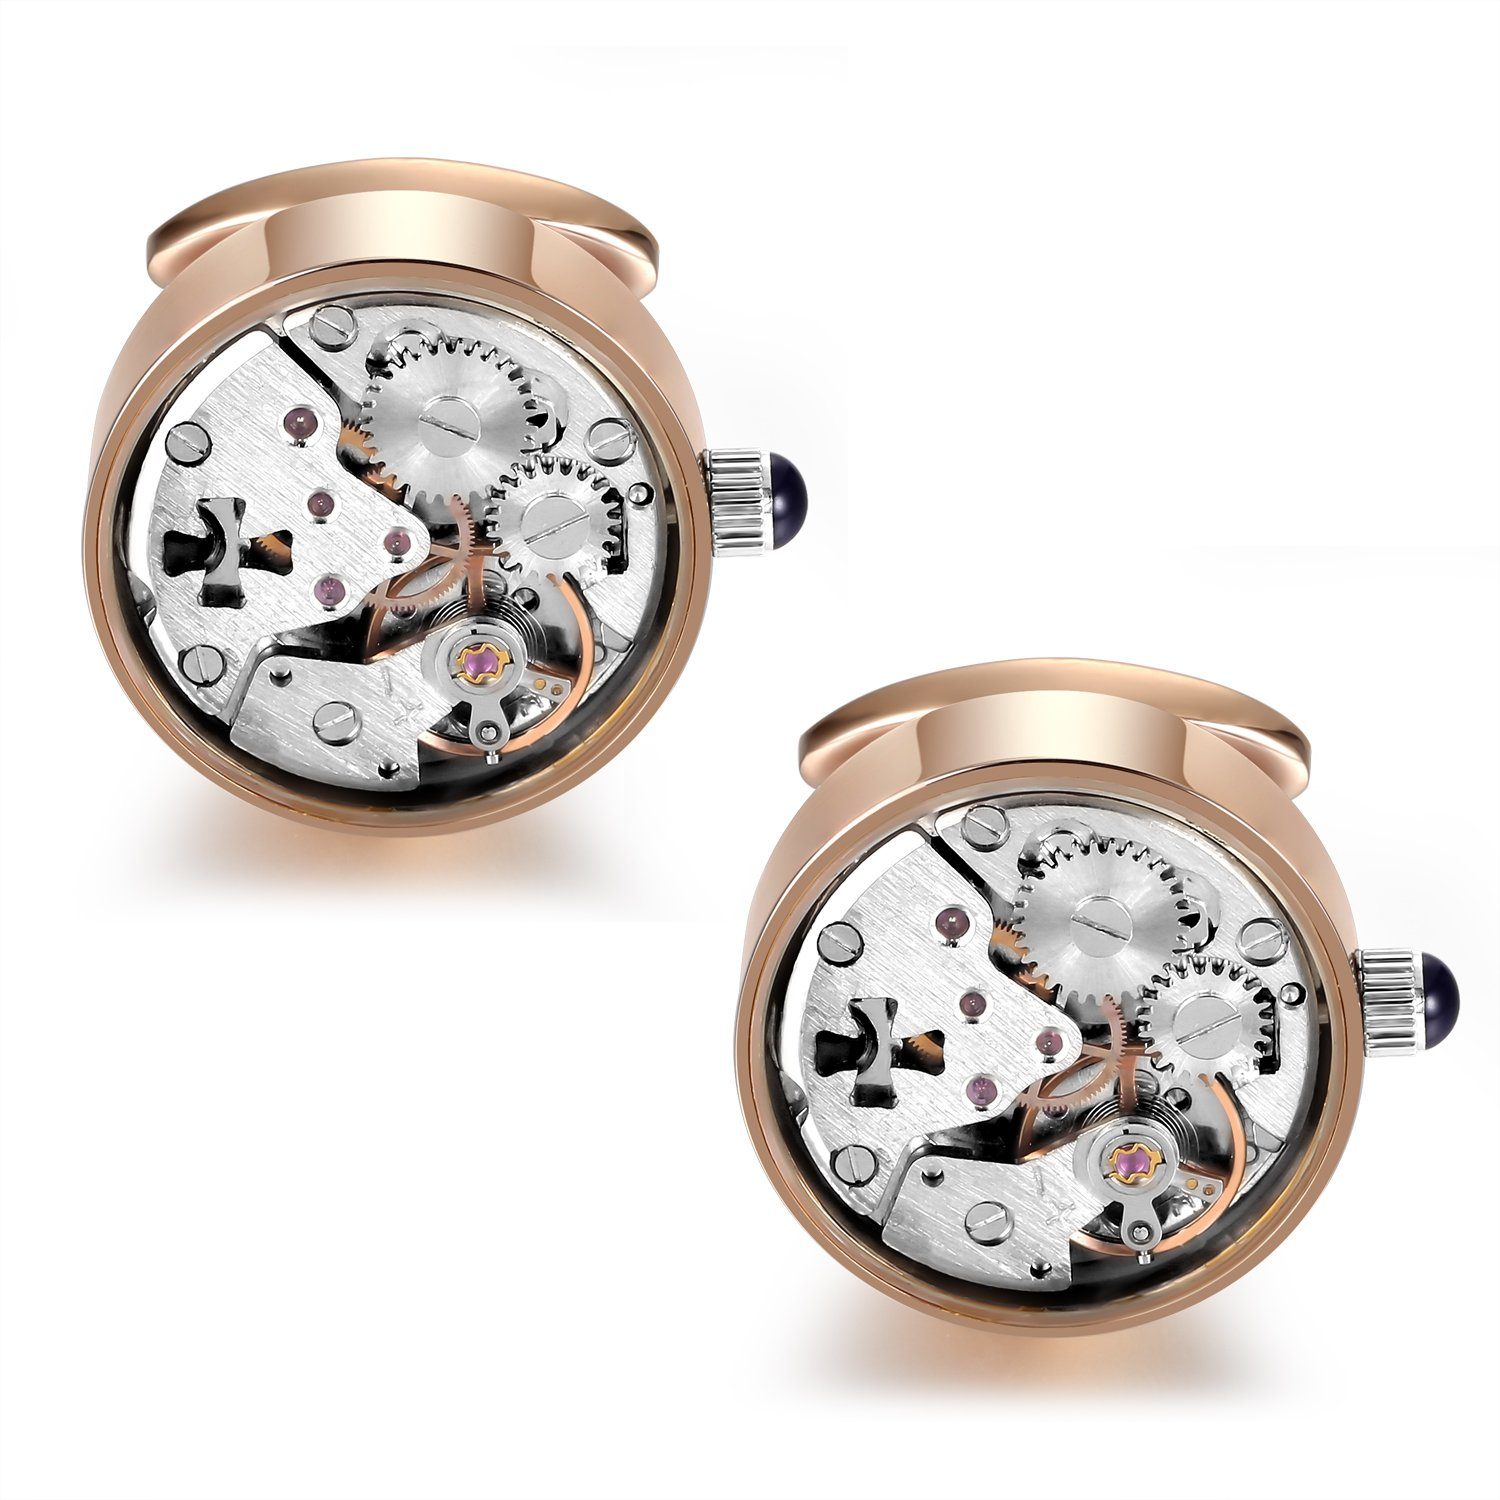 Dich Creat Unisex Rose Gold PVD Stainless Steel Hollow Out Cross Wind-up Working Movement Cufflinks Covered With Glass by Dich Creat